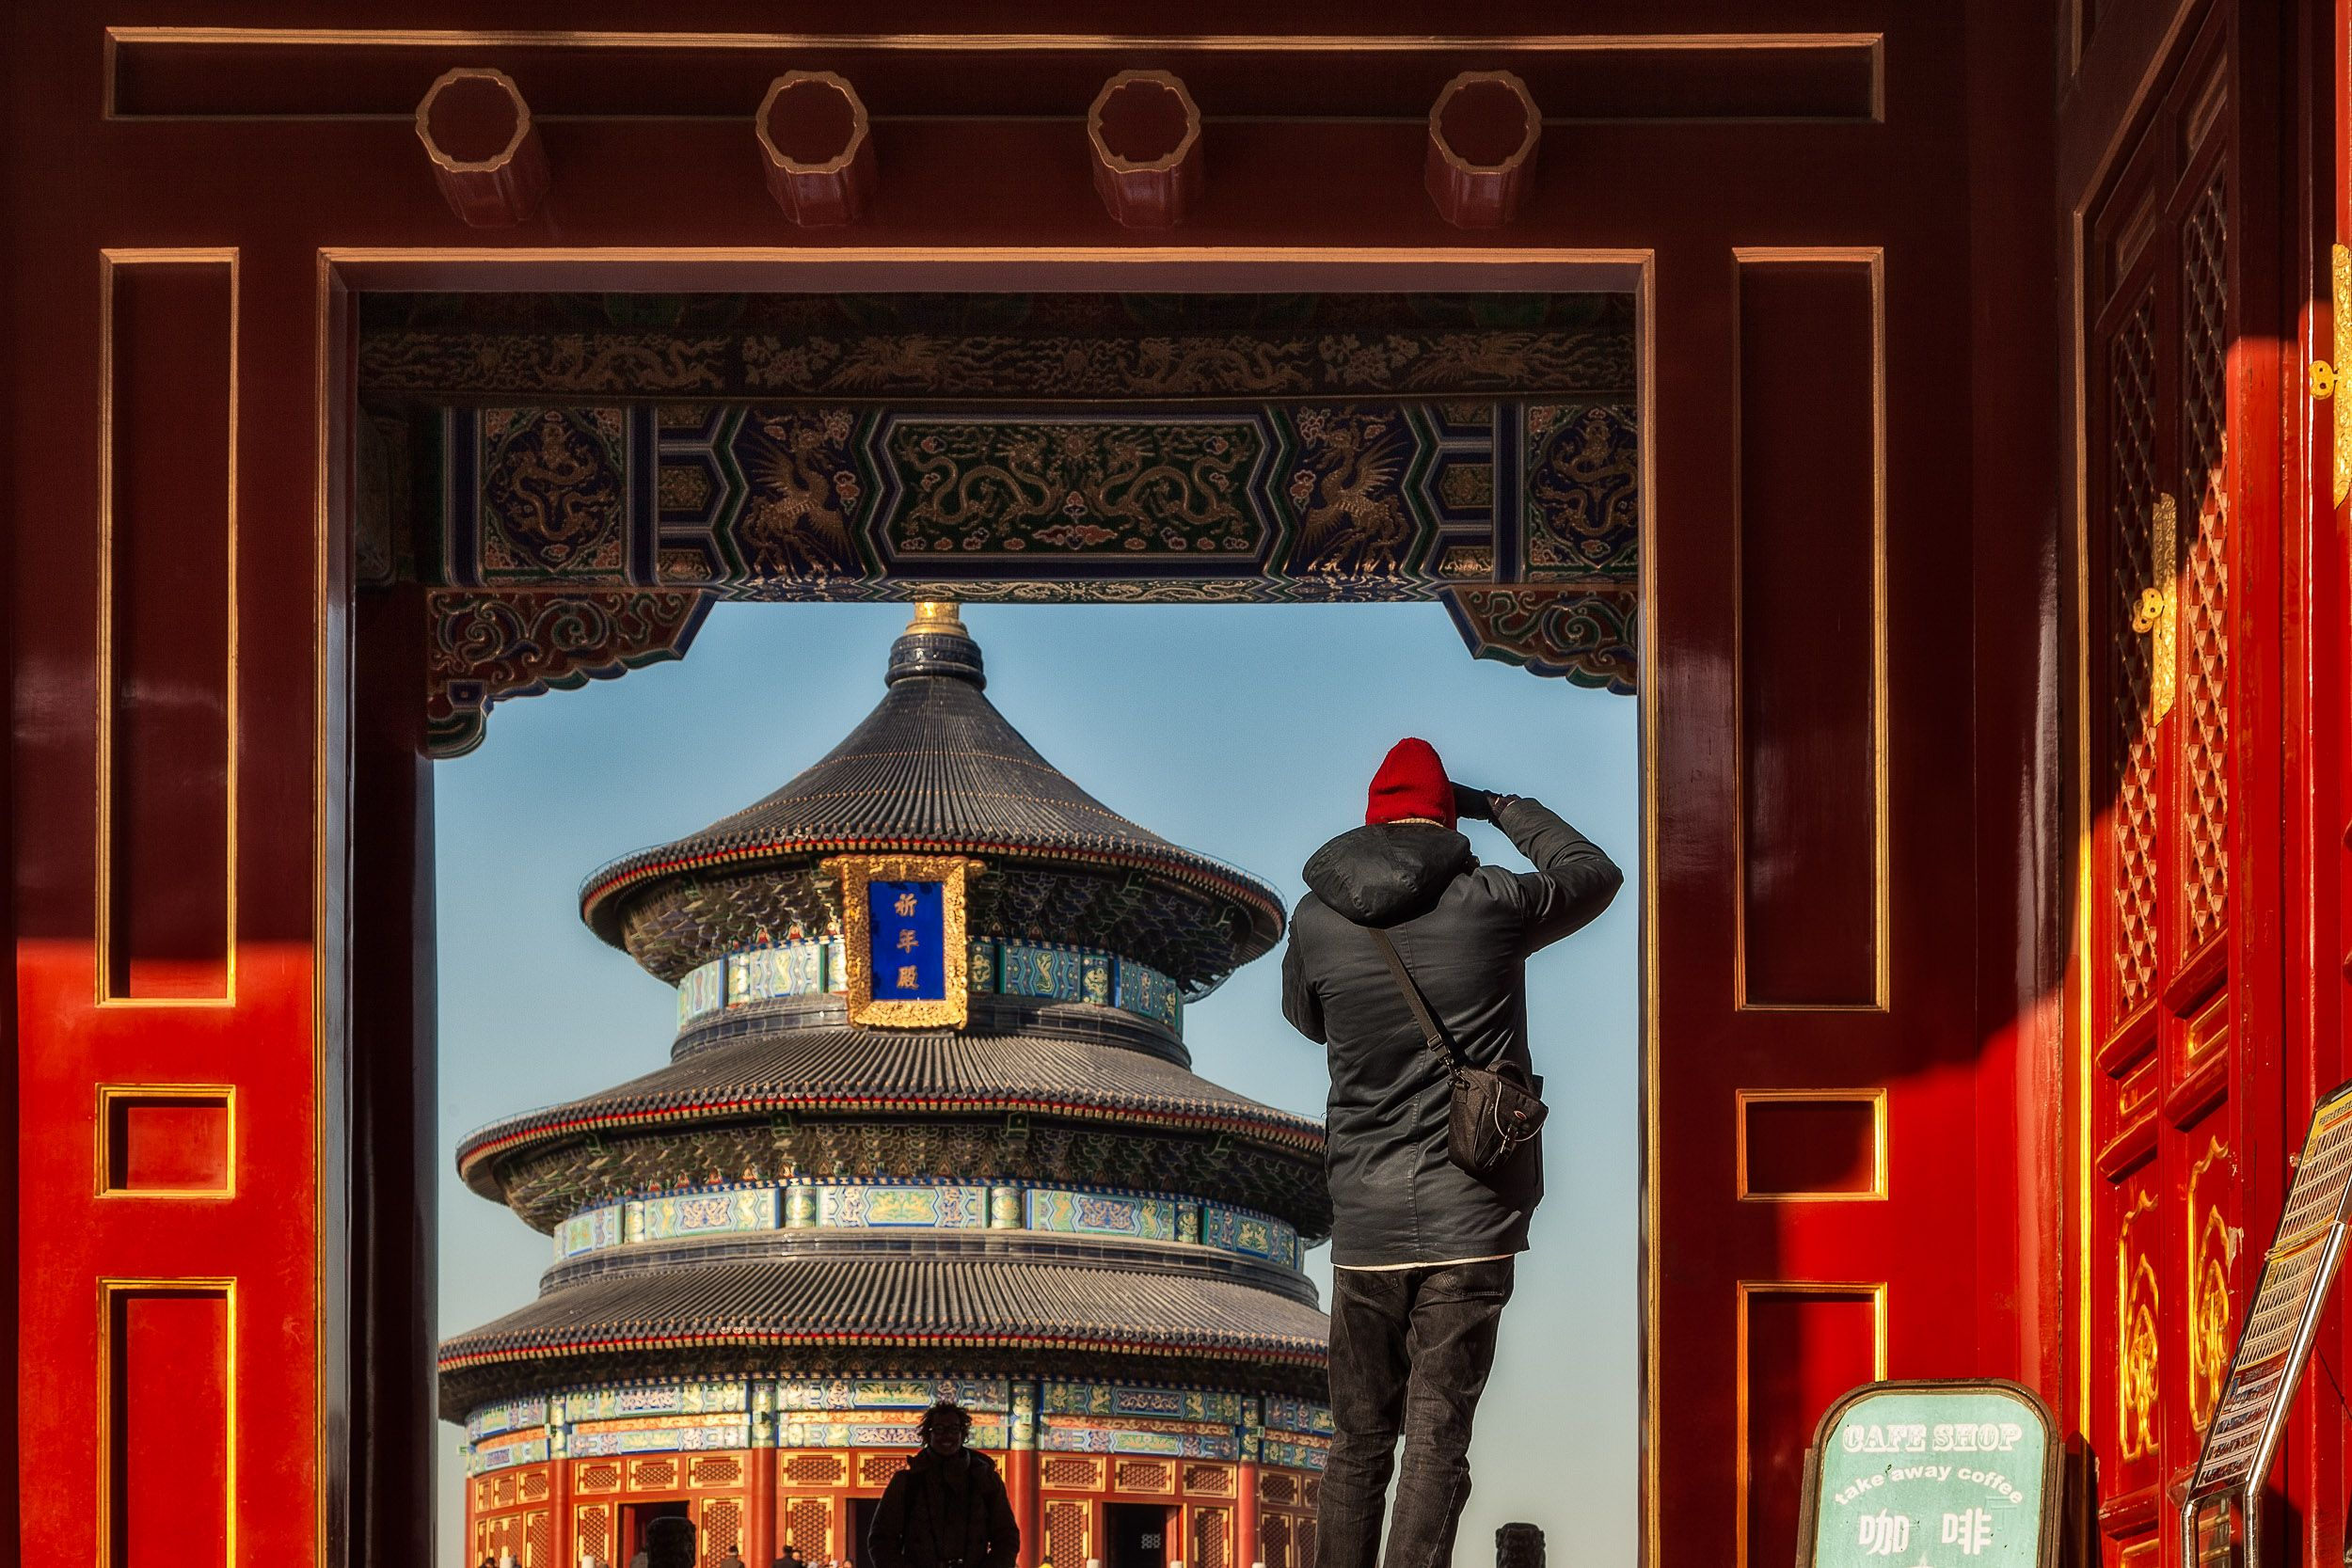 A tourist photograping in the grounds of the spectacular Temple Of Heaven in Beijing, China